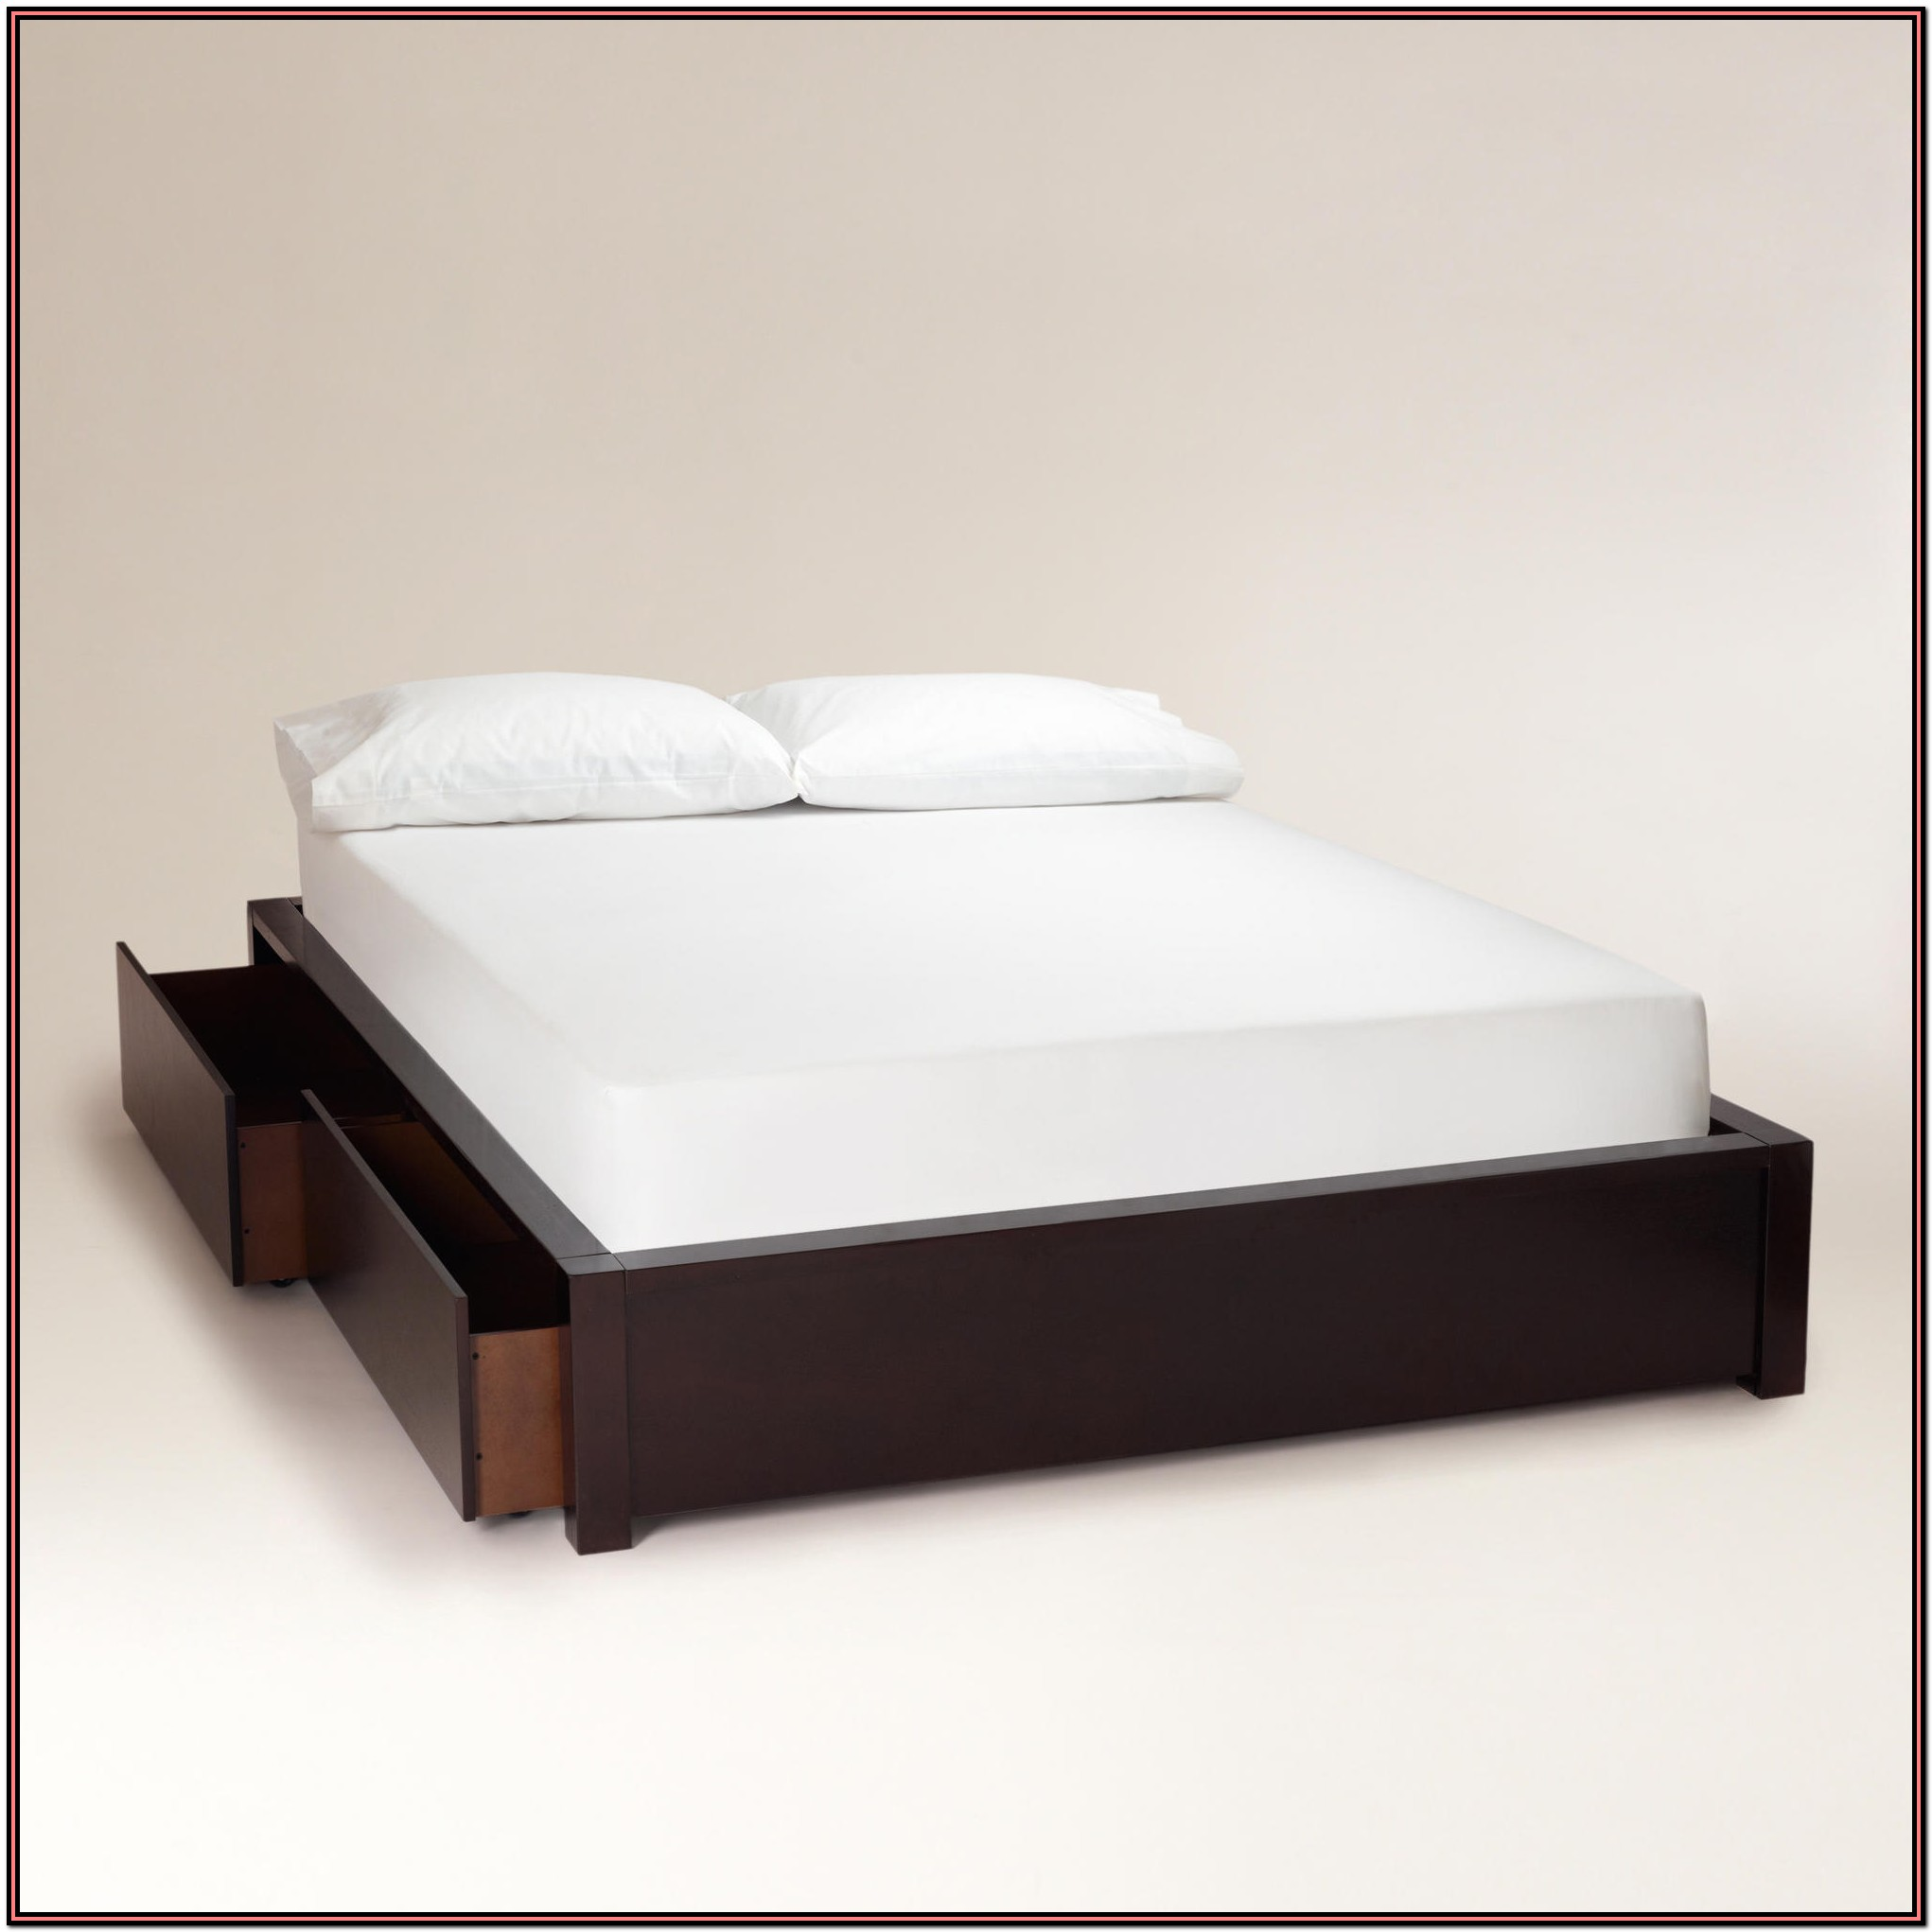 Platform Beds With Storage And Headboard